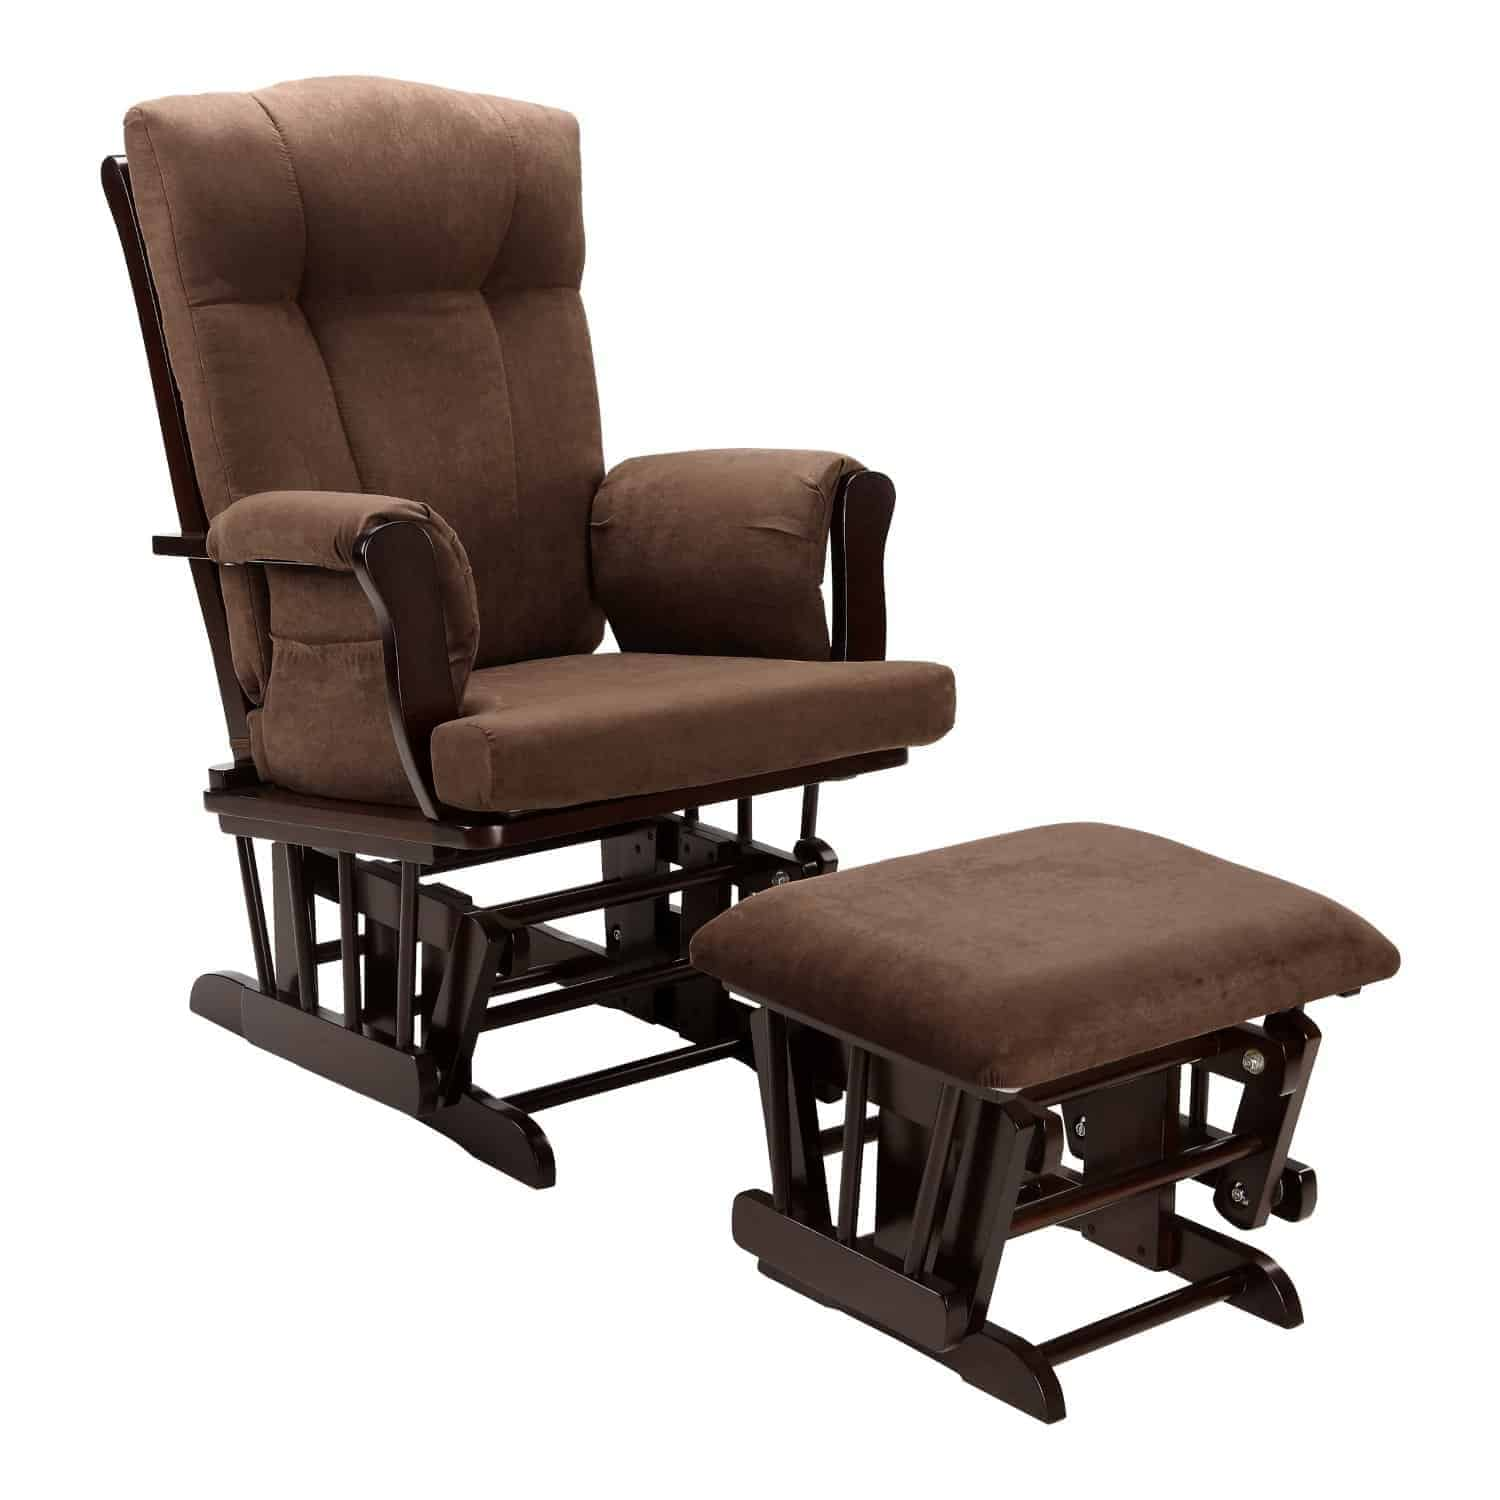 Gliding Rocking Chair Best Rocking Chairs For The Nursery